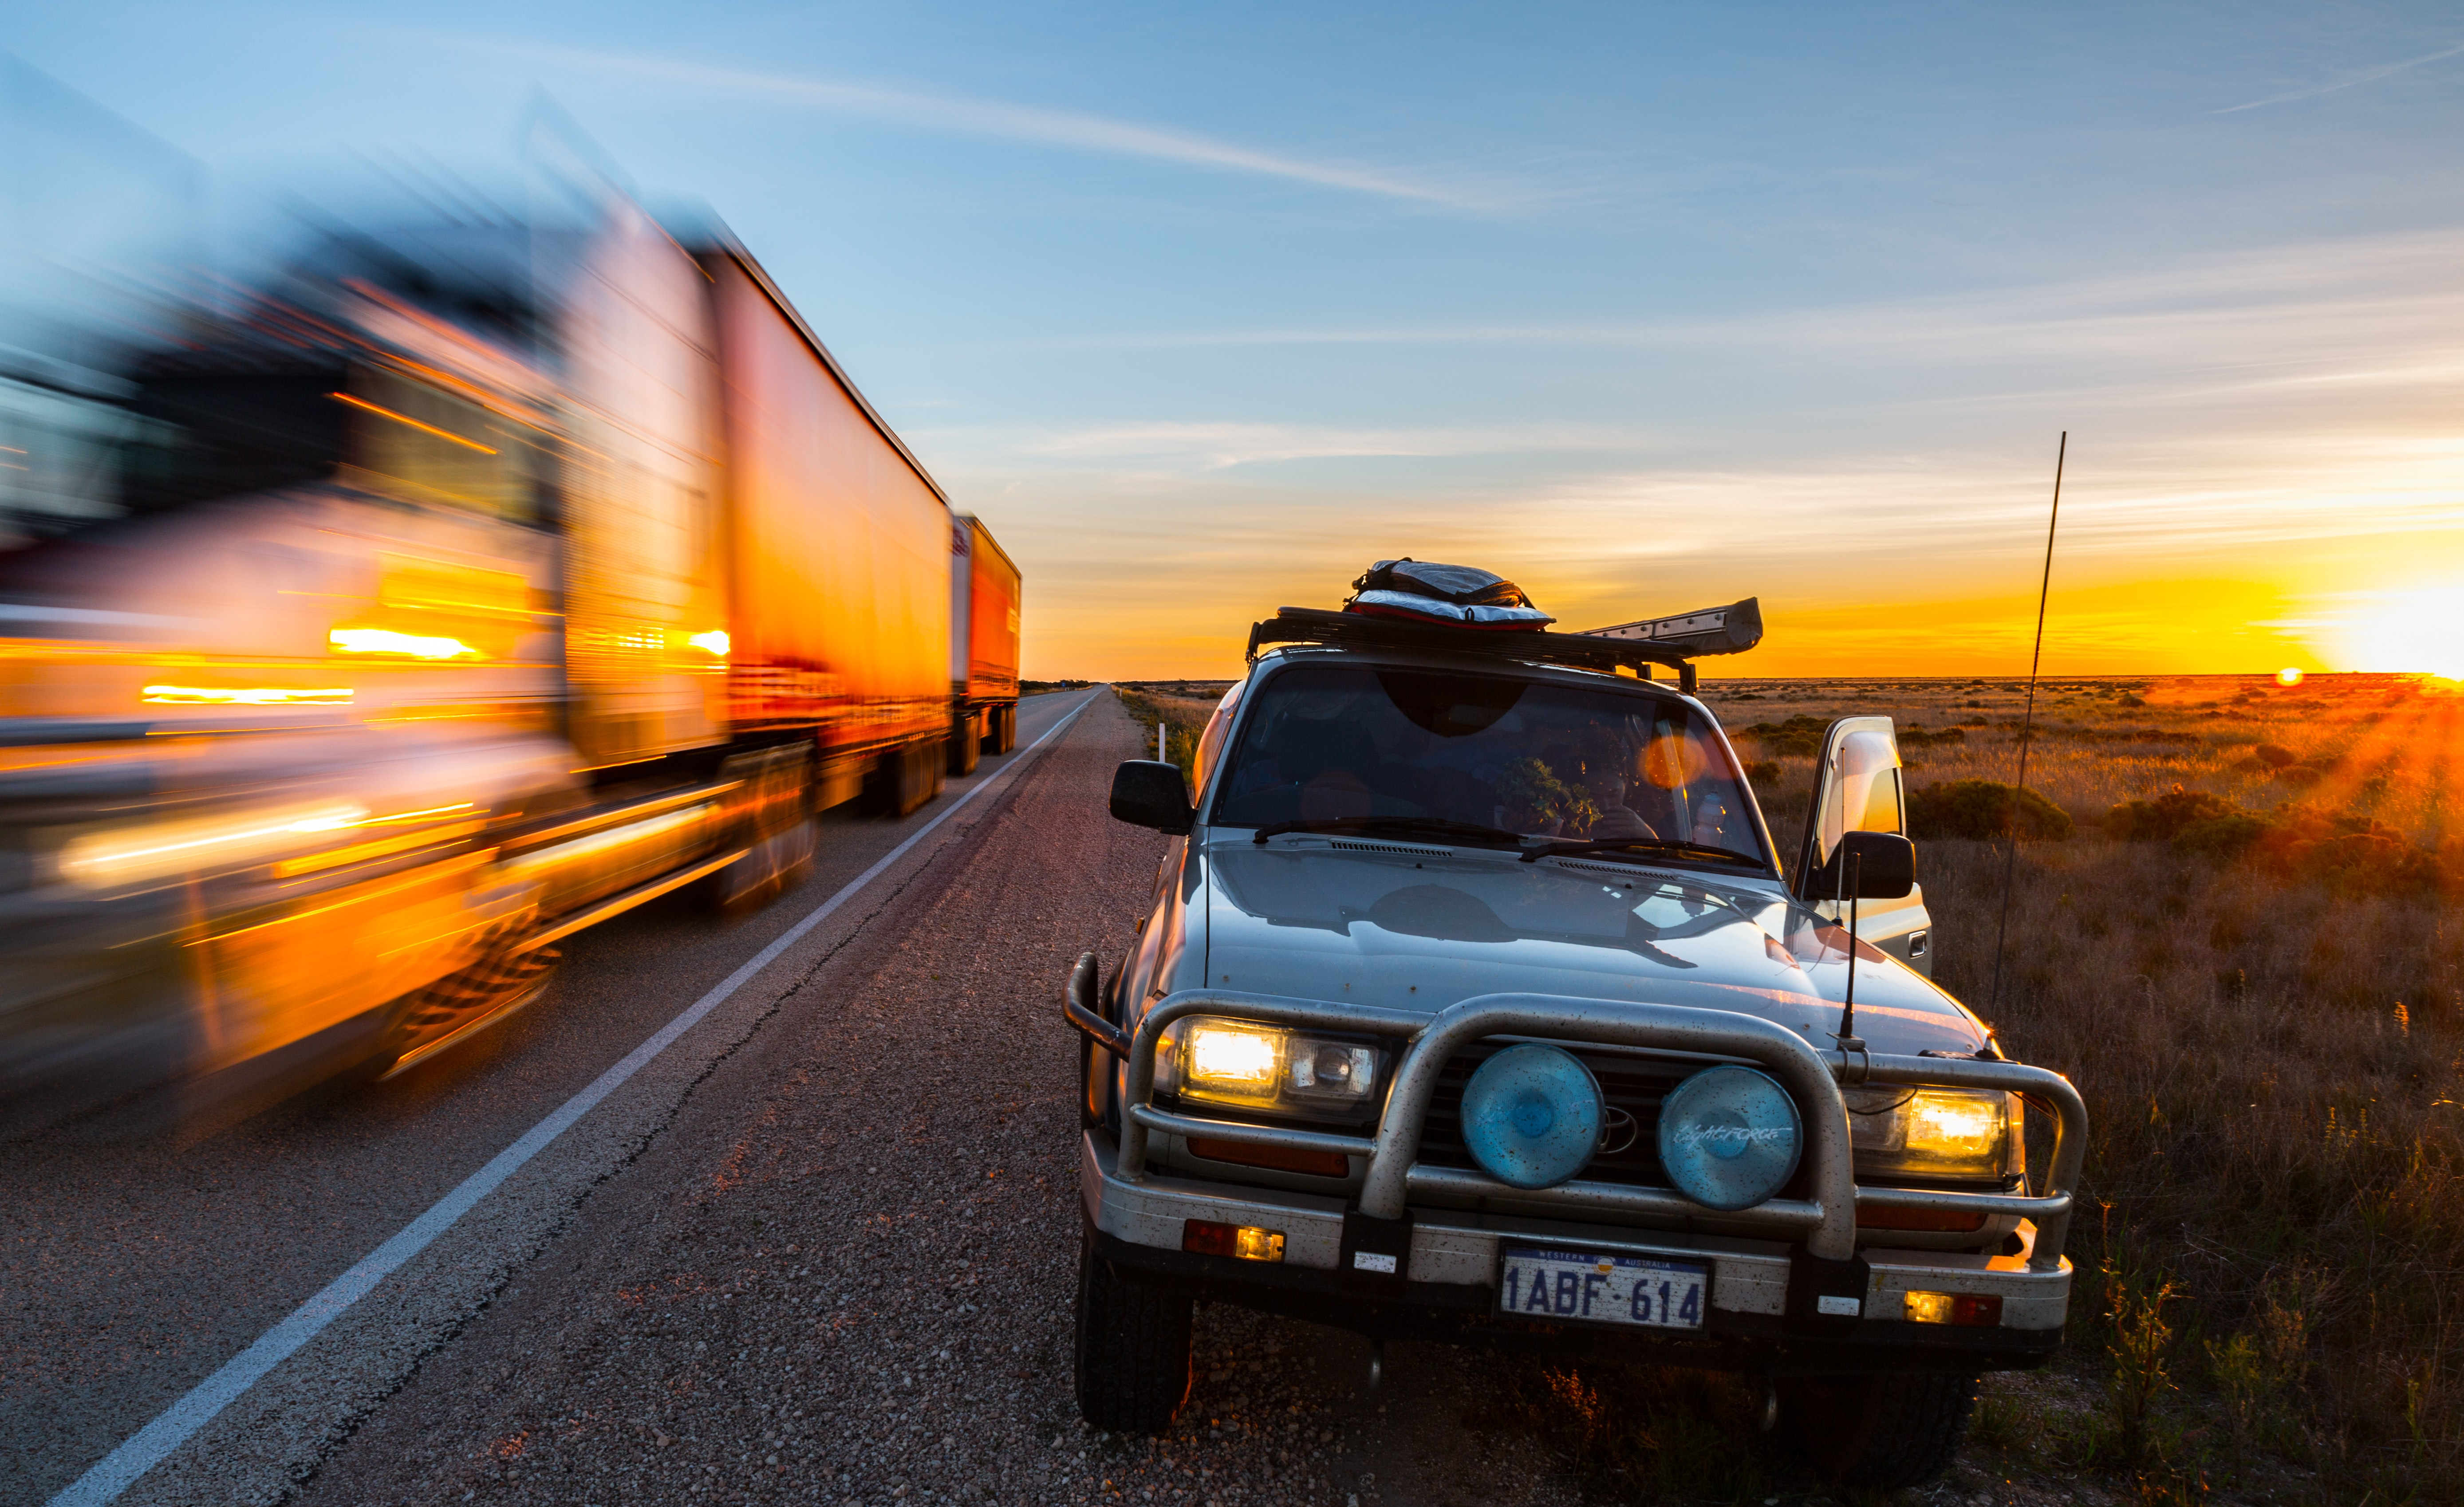 A view of a car parked on a roadside while a truck is moving next to it in Nullarbor